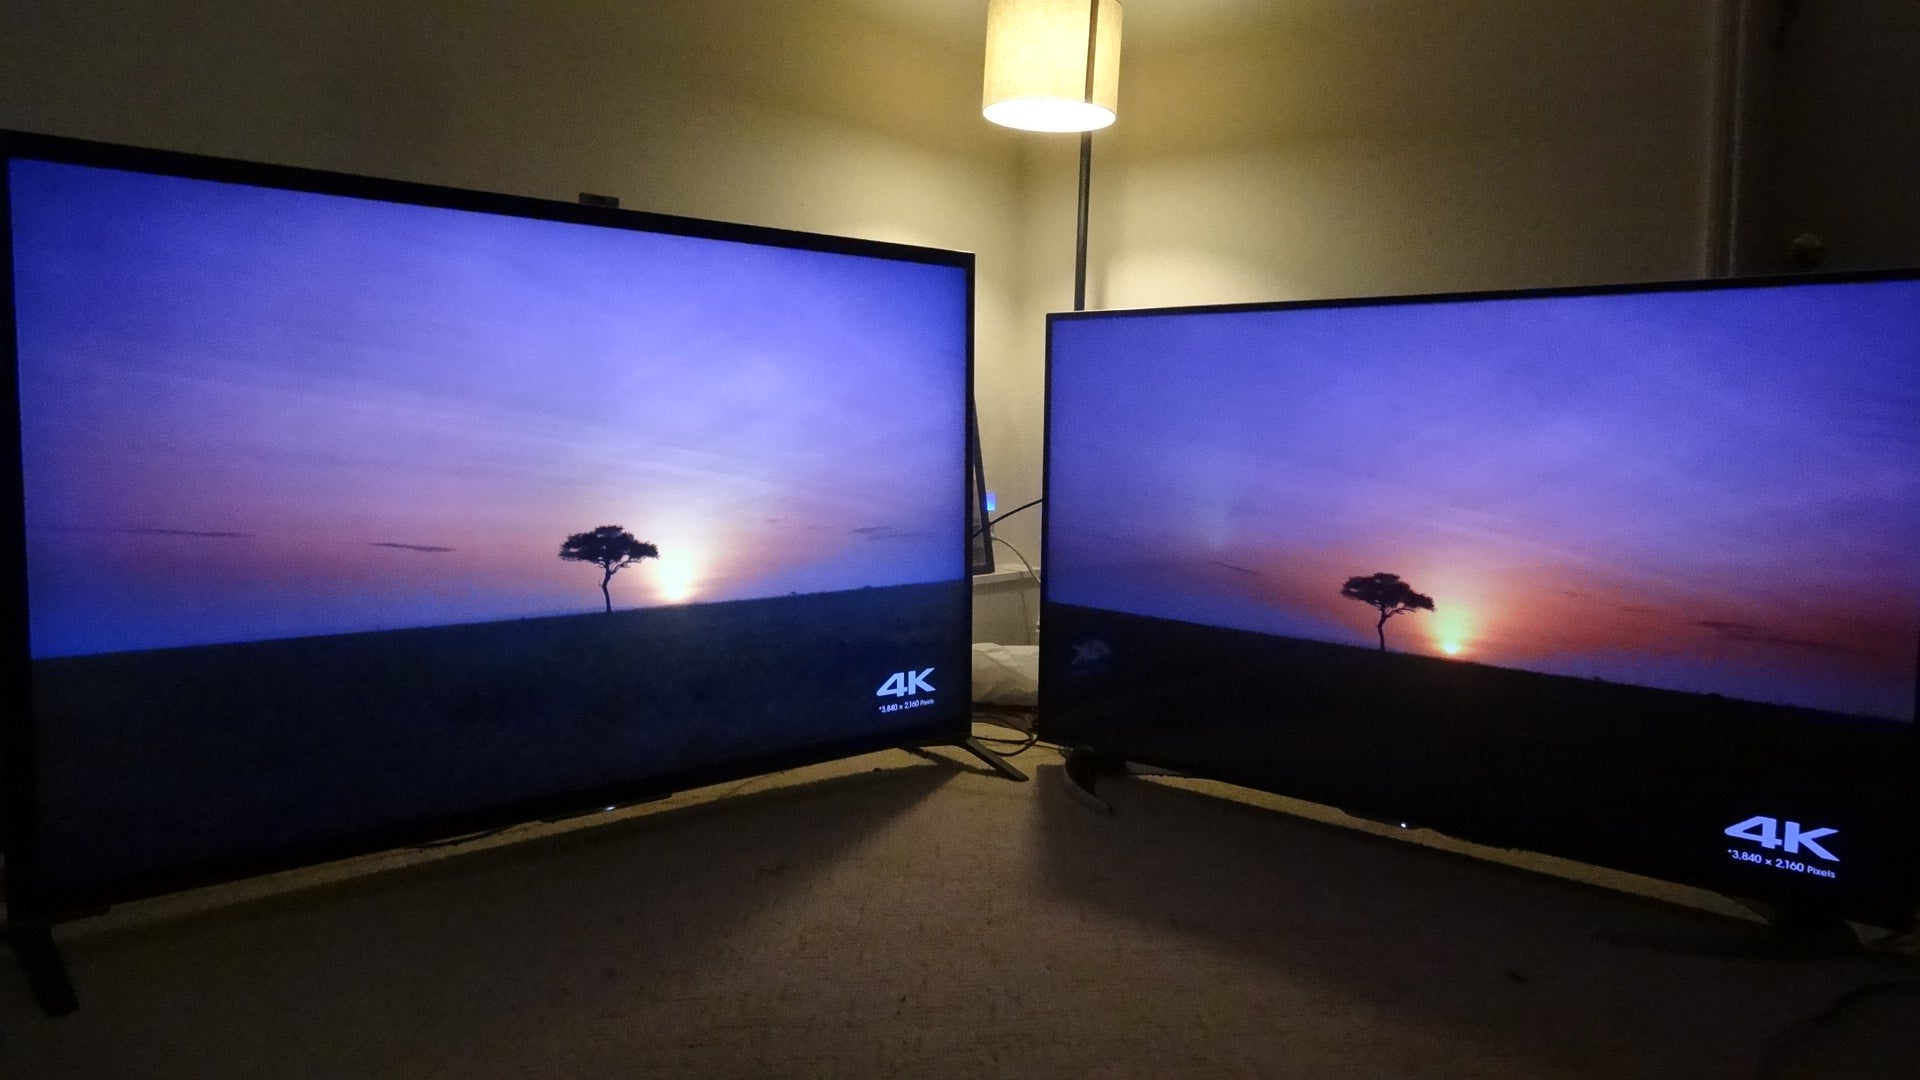 4K TV Throwdown, Part One: How the Sharp UD27 Stacks Up